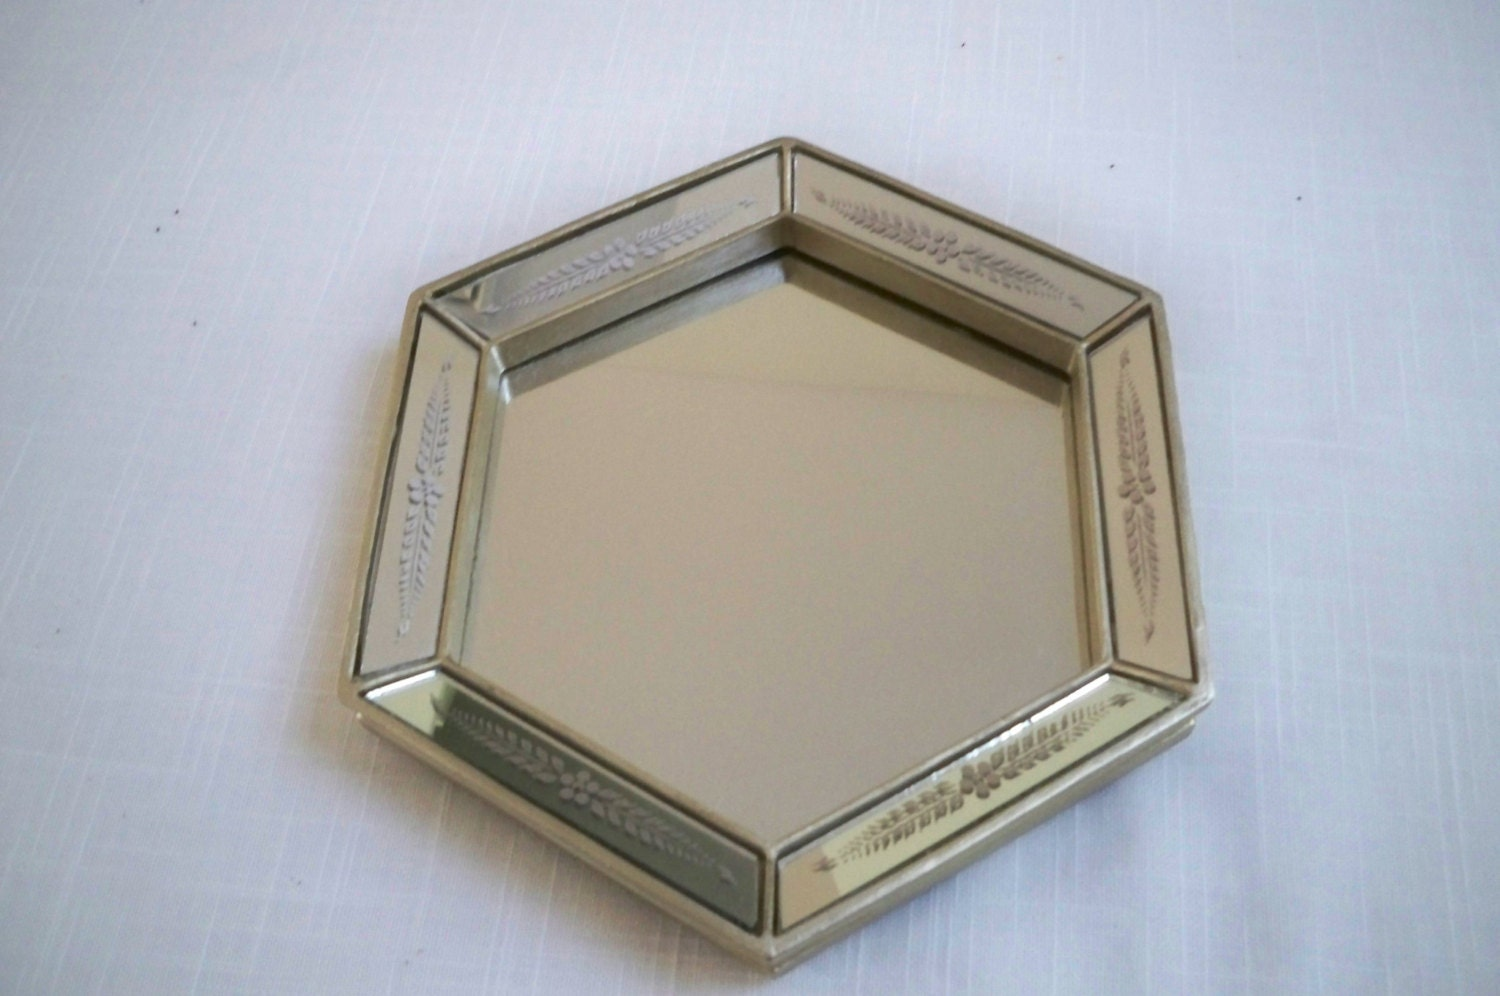 Vintage home decor mirror wall hanging or stand up mirror for Stand up mirror